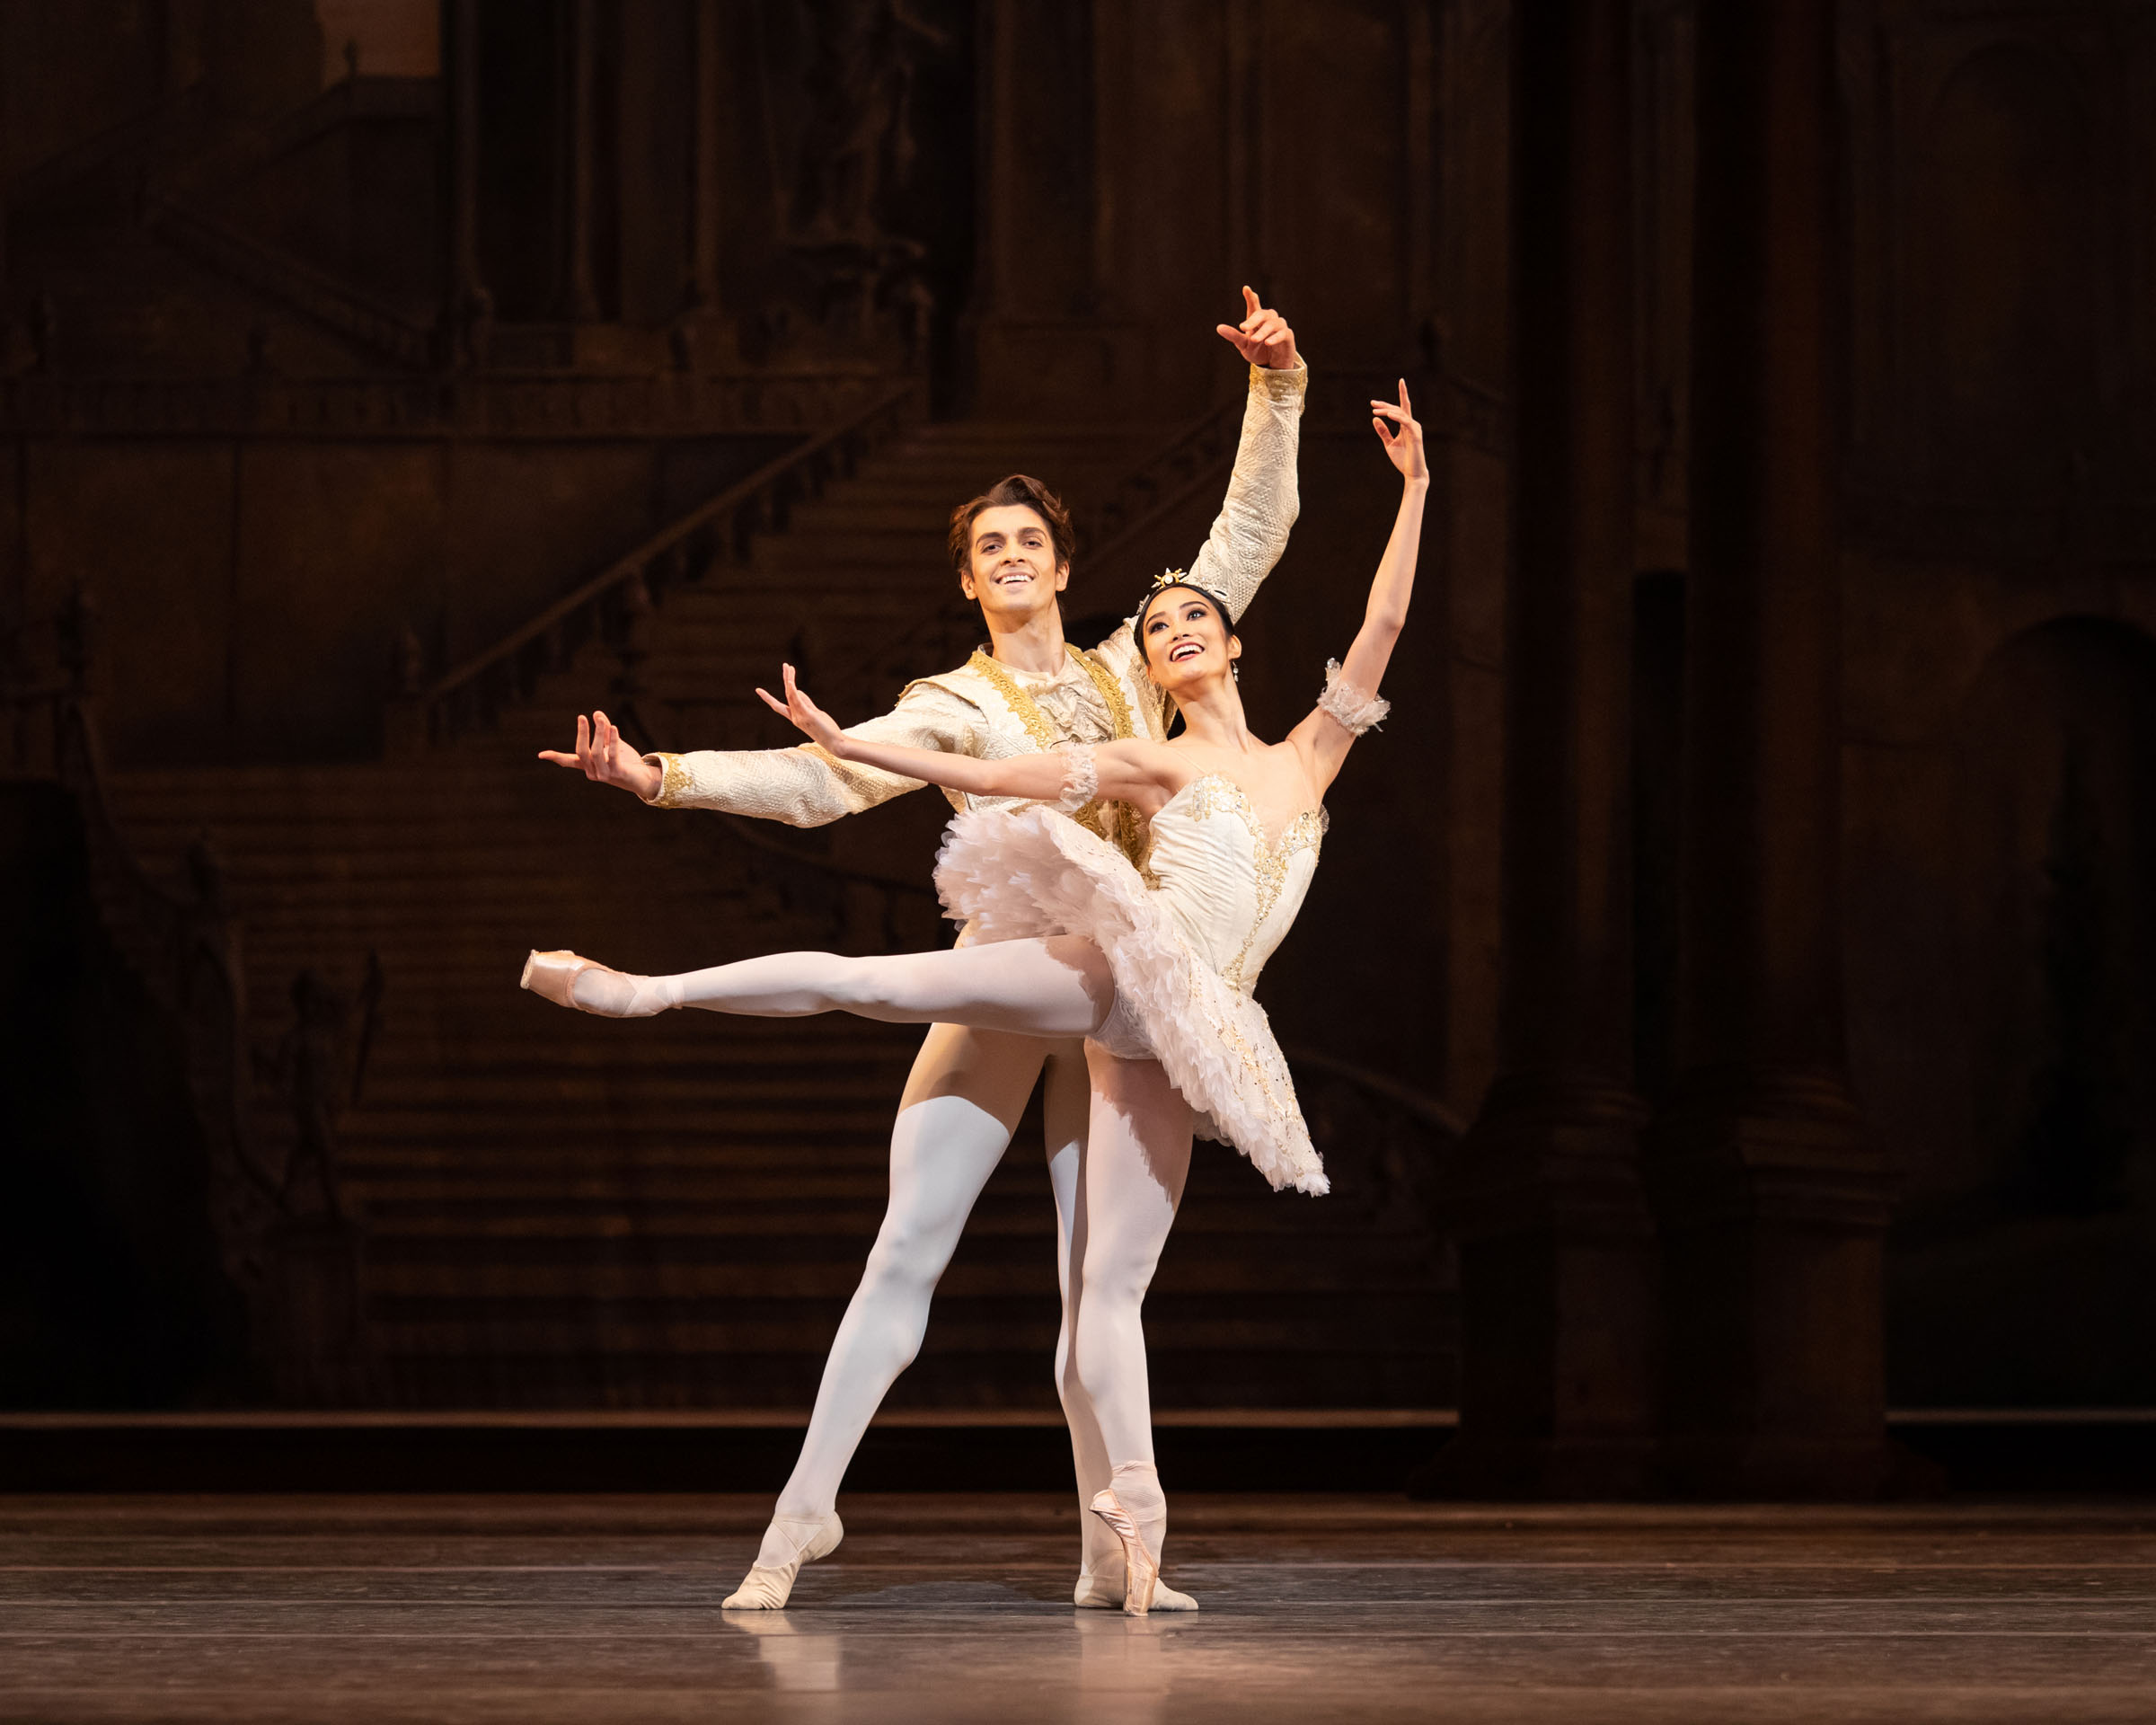 Reece Clarke as Prince Florimund and Fumi Kaneko as Princess Aurora in The Sleeping Beauty